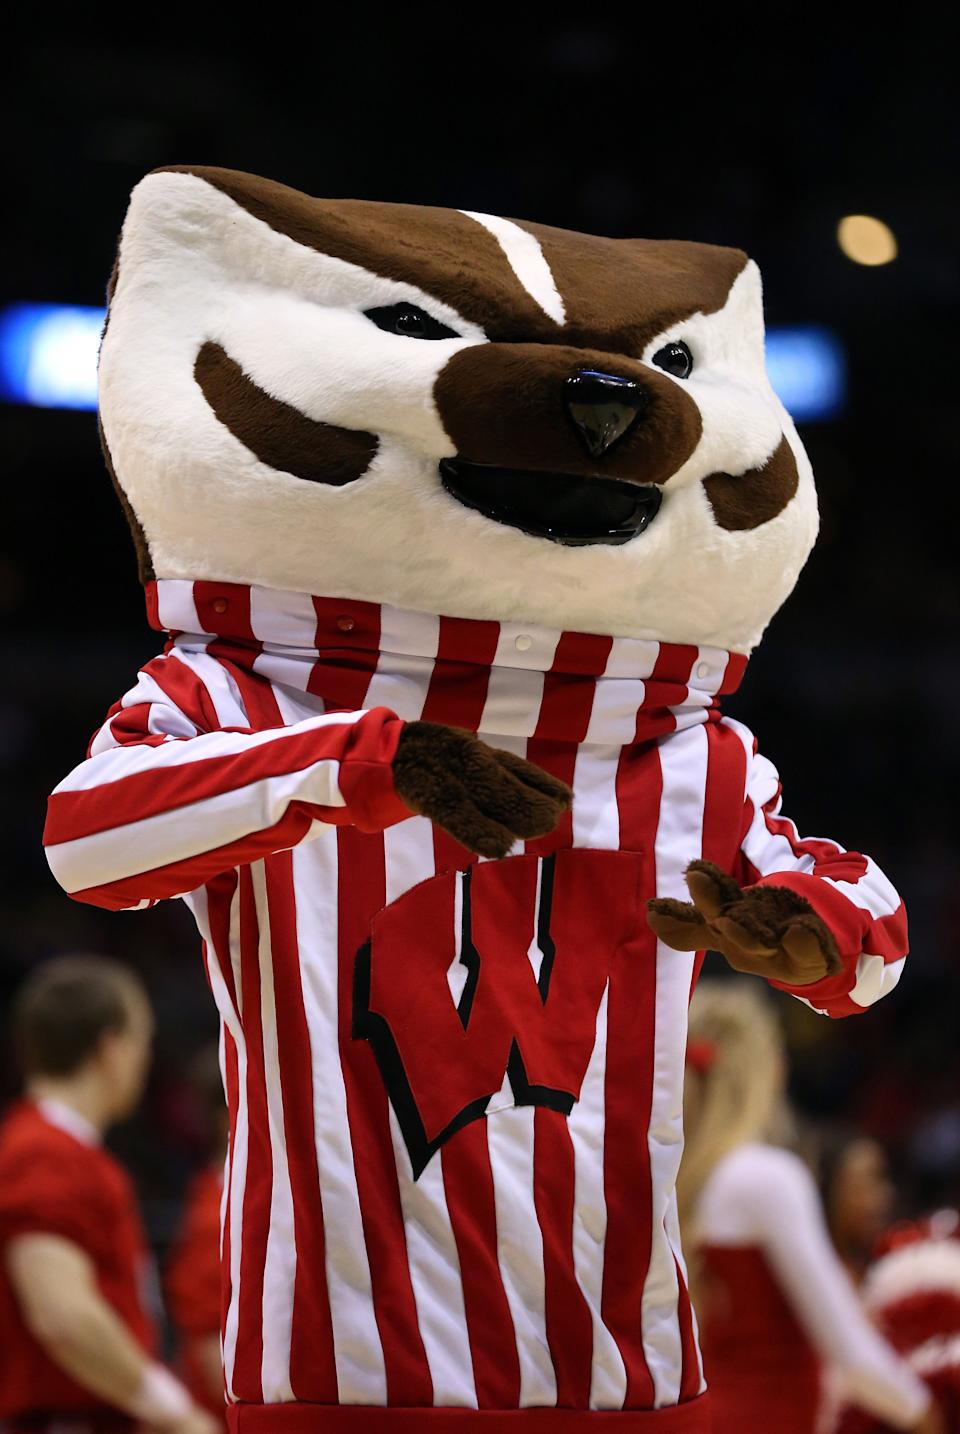 MILWAUKEE, WI - MARCH 20:  The Wisconsin Badgers mascot, Bucky Badger, performs during the second round game of NCAA Basketball Tournament against the American University Eagles at BMO Harris Bradley Center on March 20, 2014 in Milwaukee, Wisconsin.  (Photo by Jonathan Daniel/Getty Images)